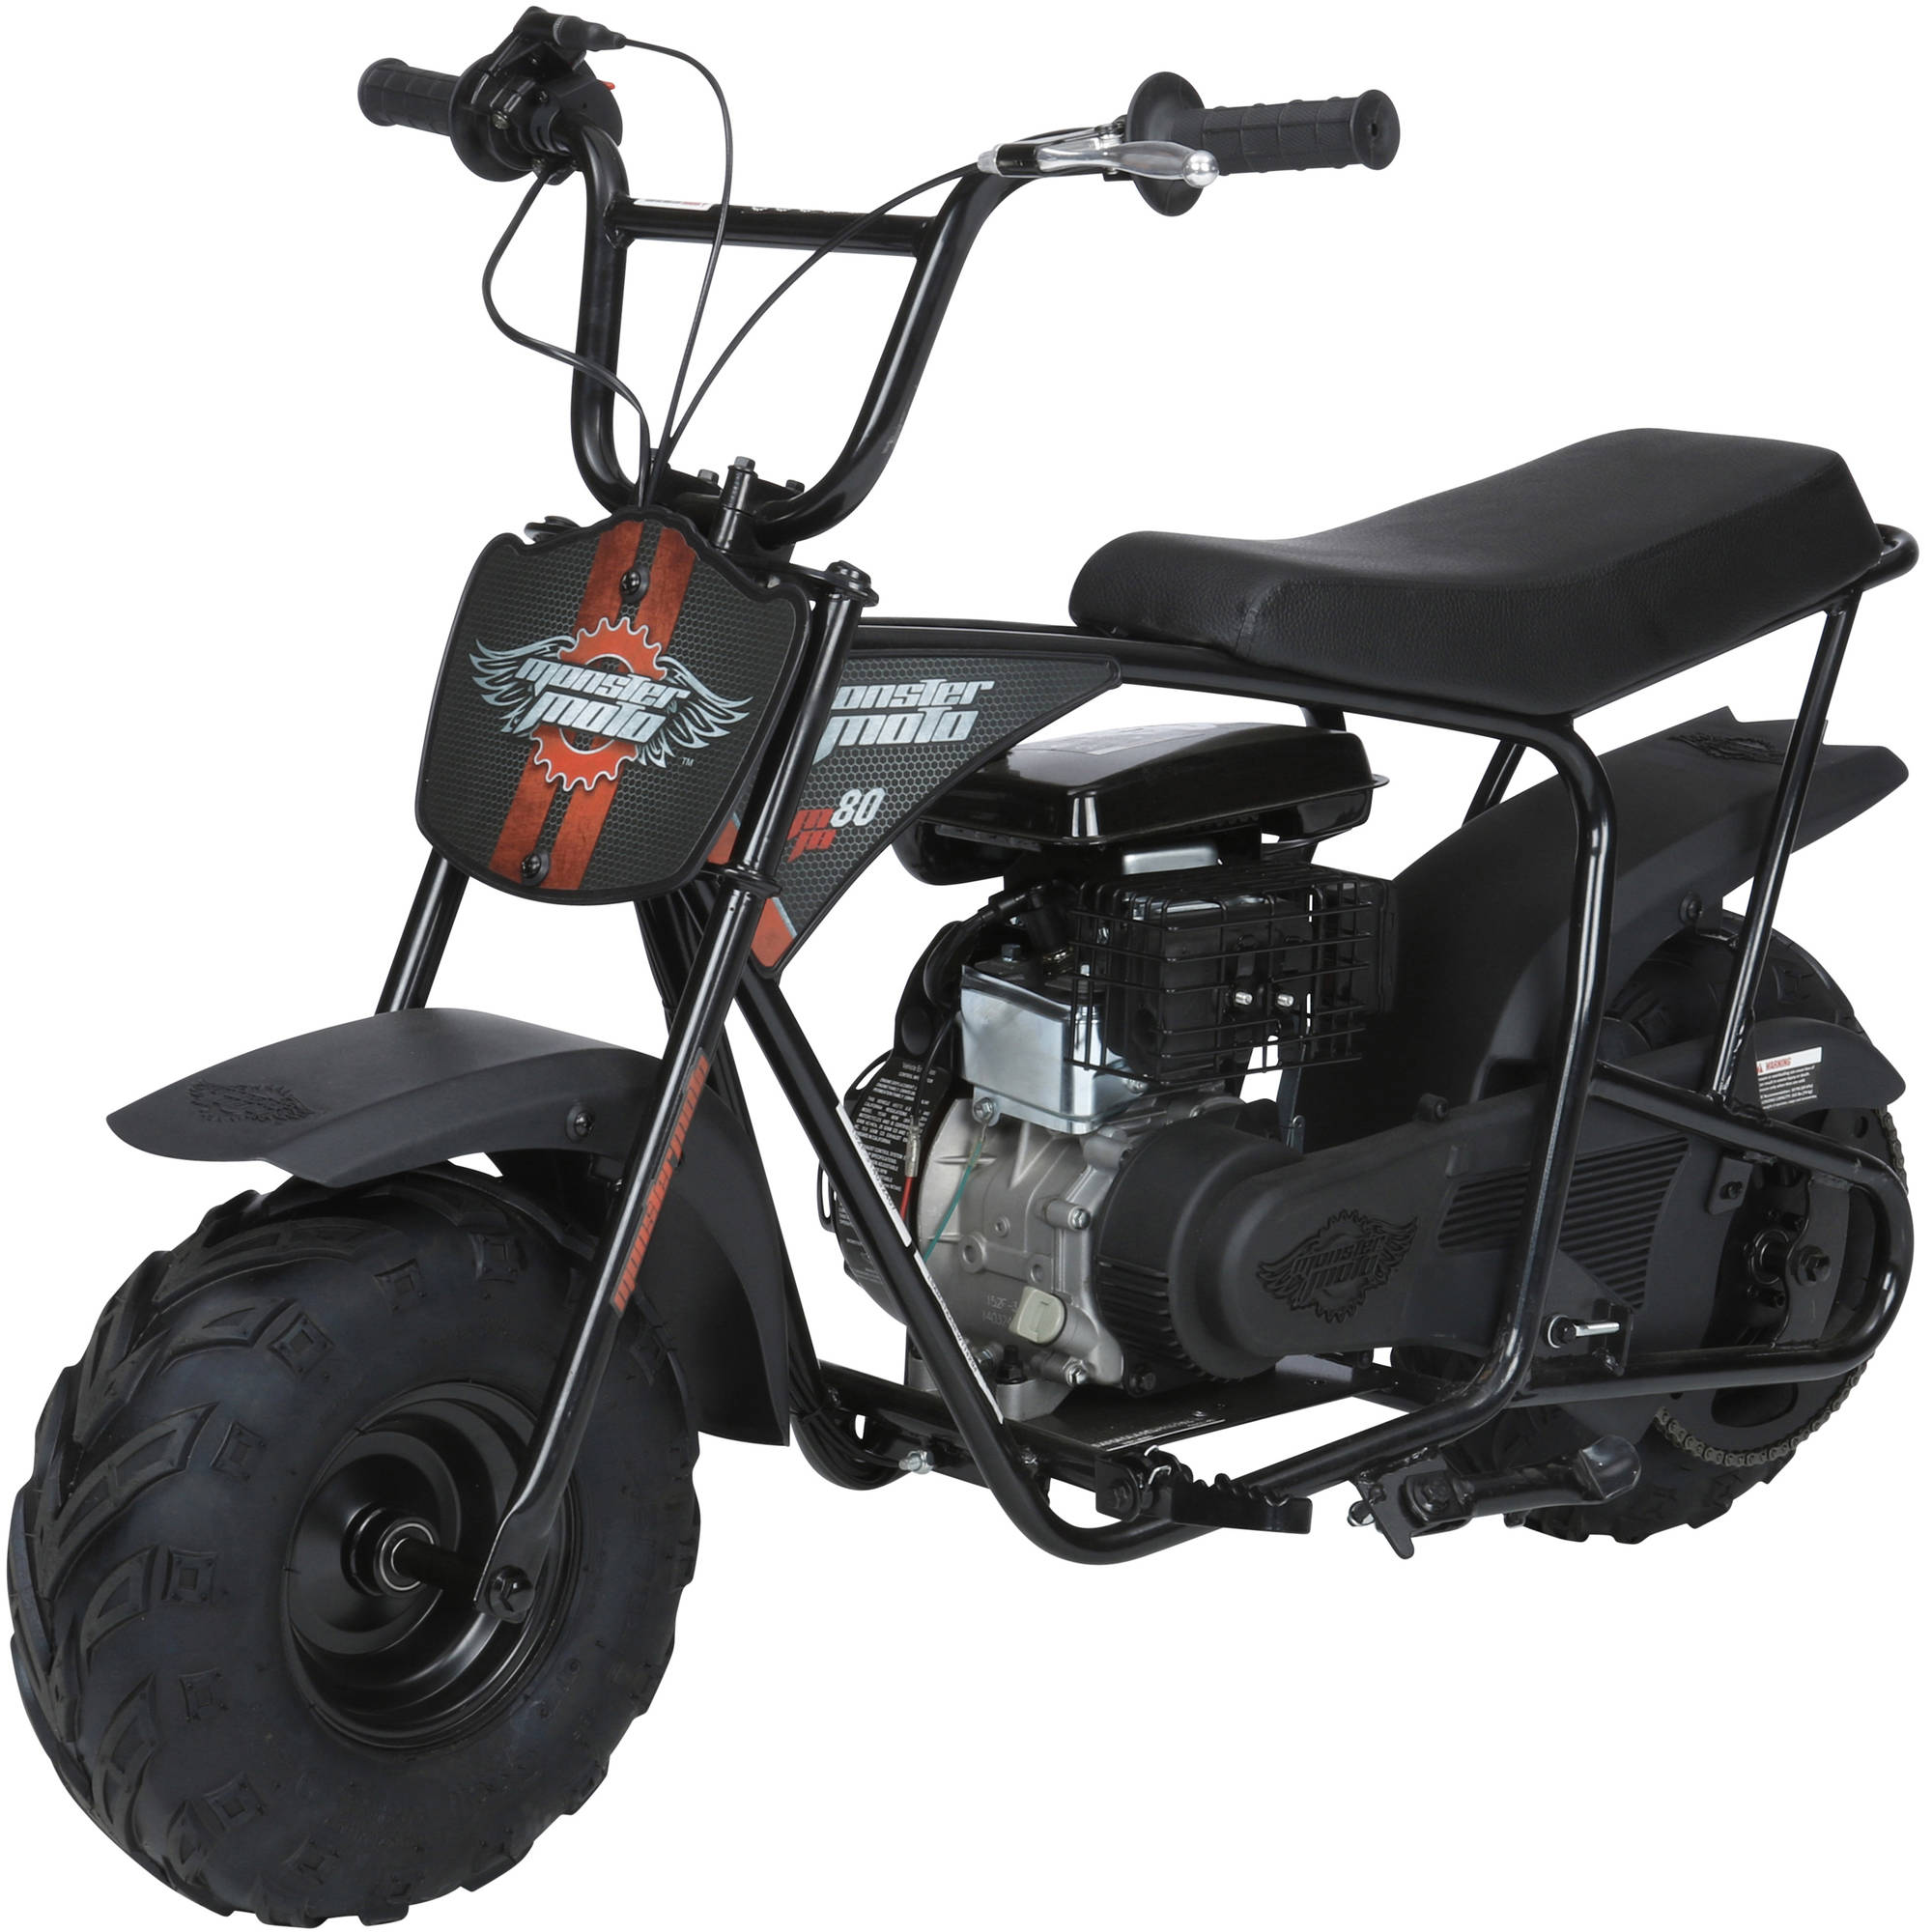 Oct 26, · In order to be able to post messages on the Pocket Bike Forum - Mini Bikes forums, you must first register. Please enter your desired user name, your email address and other required details in .